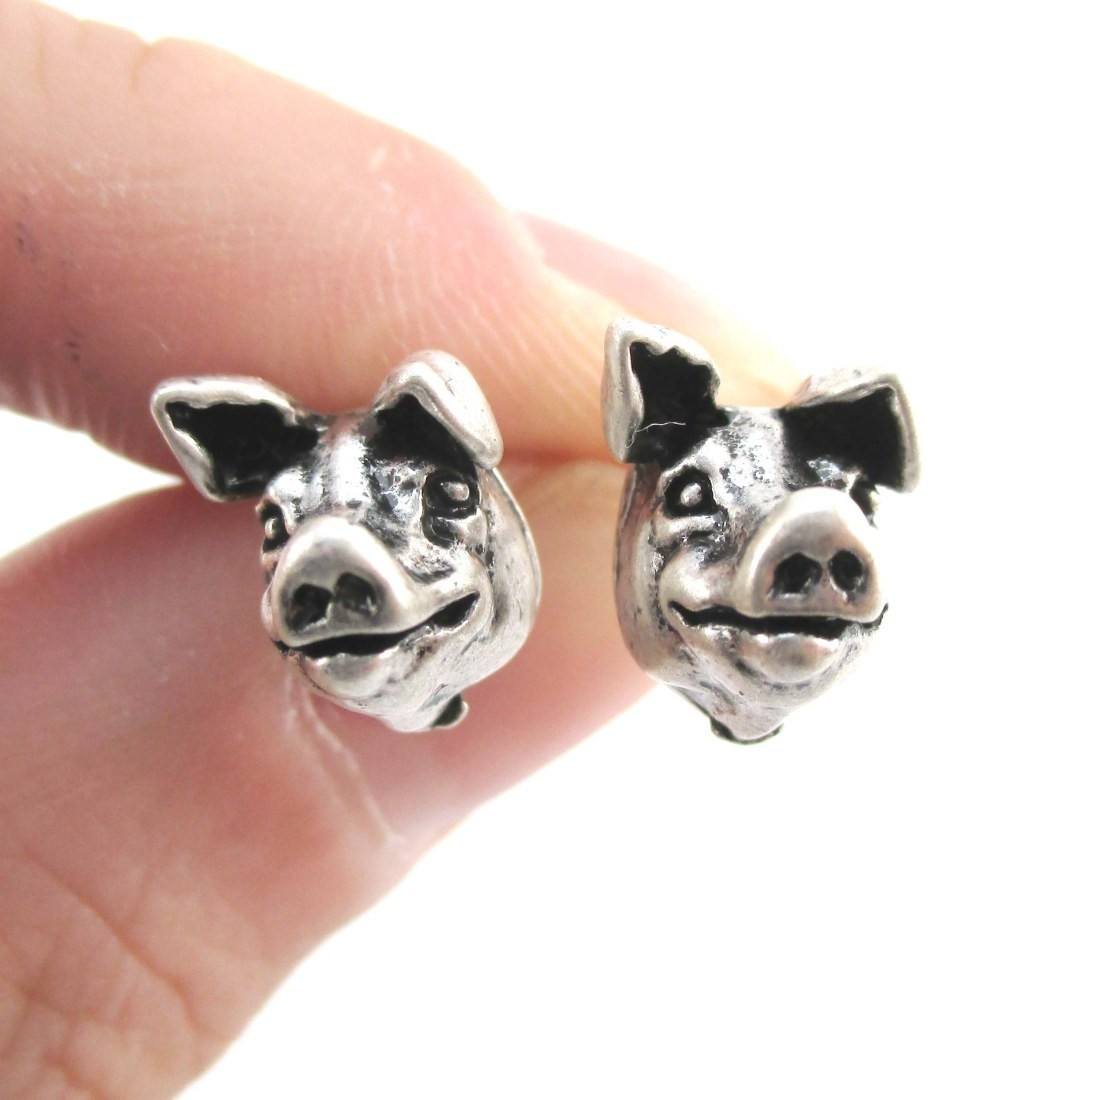 Realistic Piglet Pig Farm Animal Shaped Stud Earrings